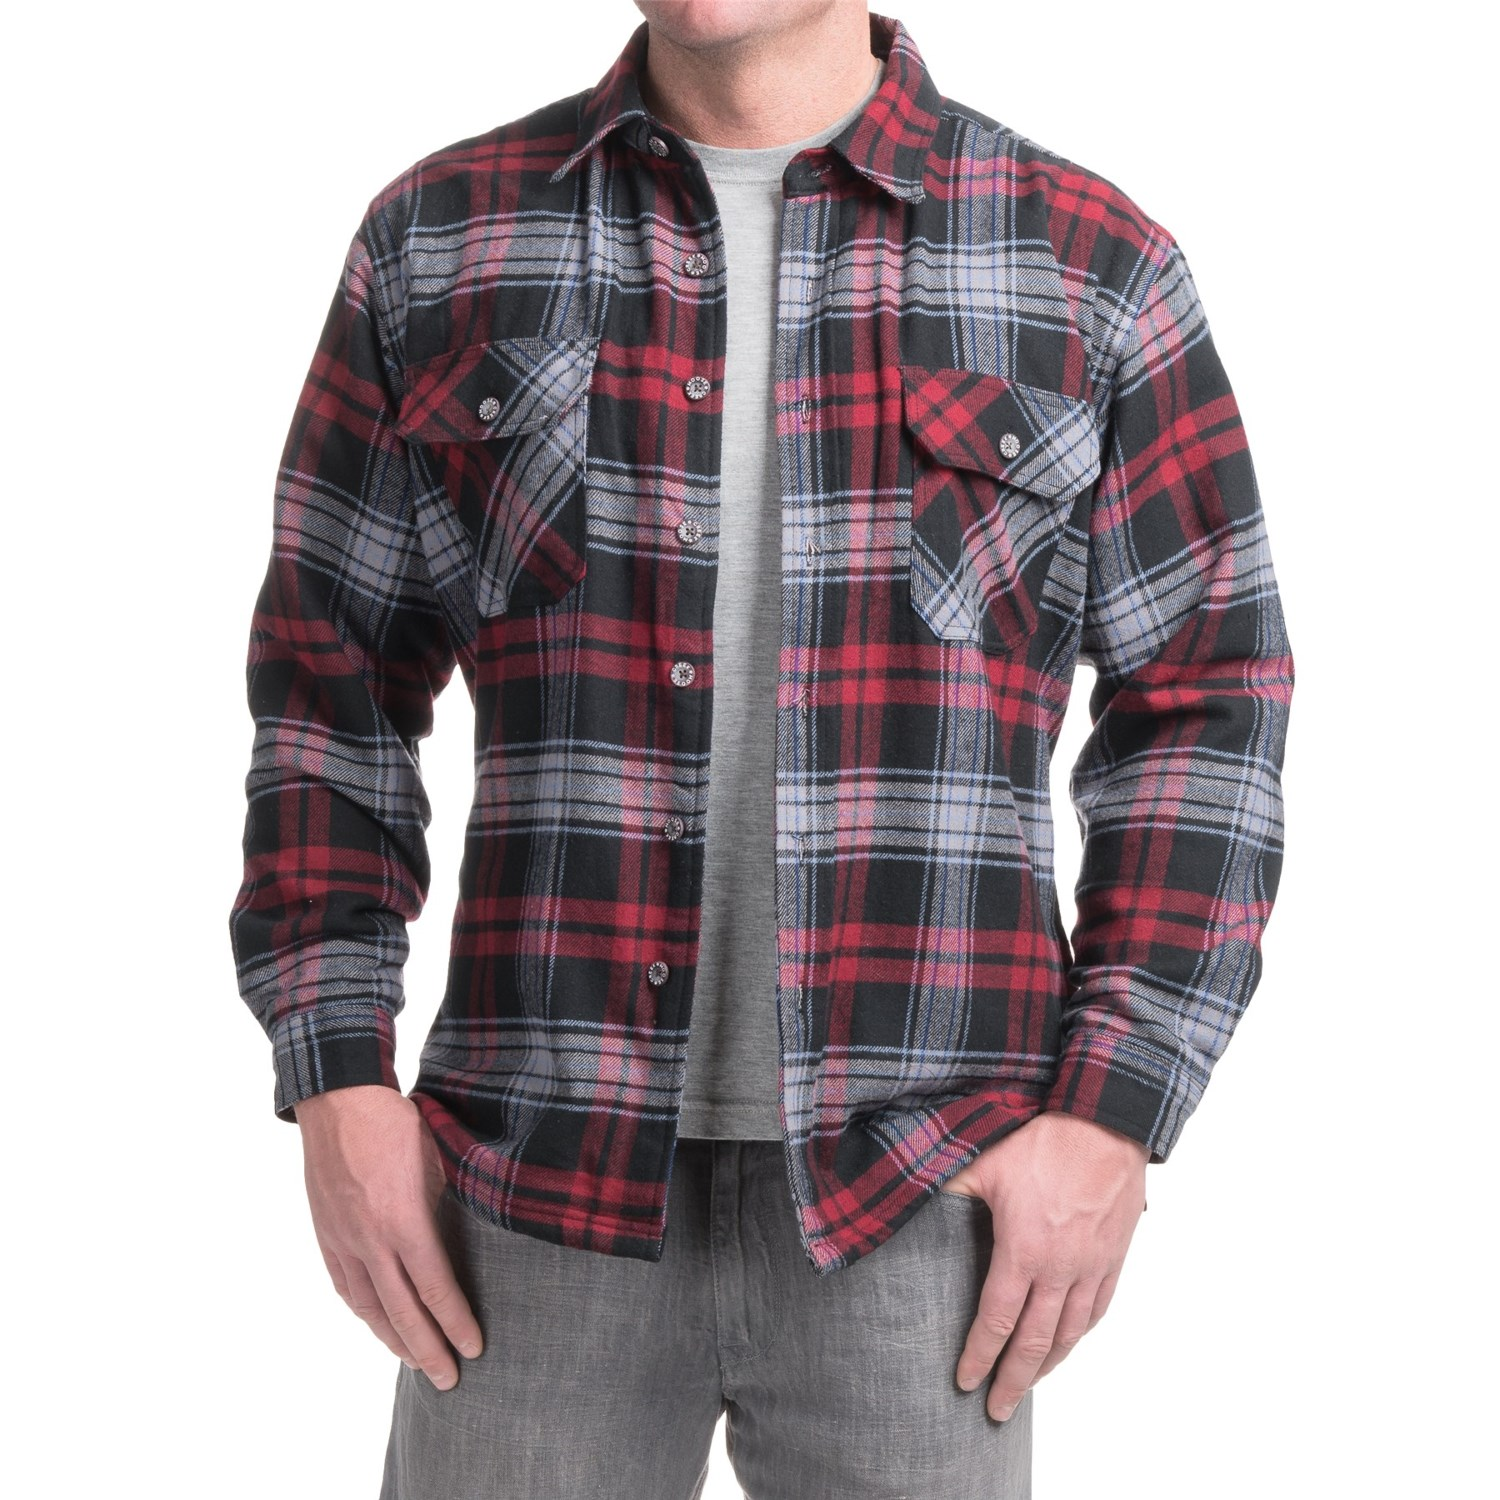 ponderosa men Stay warm and look great in this cody james ponderosa jacket it has western yokes with a corduroy collar and a zippered front.